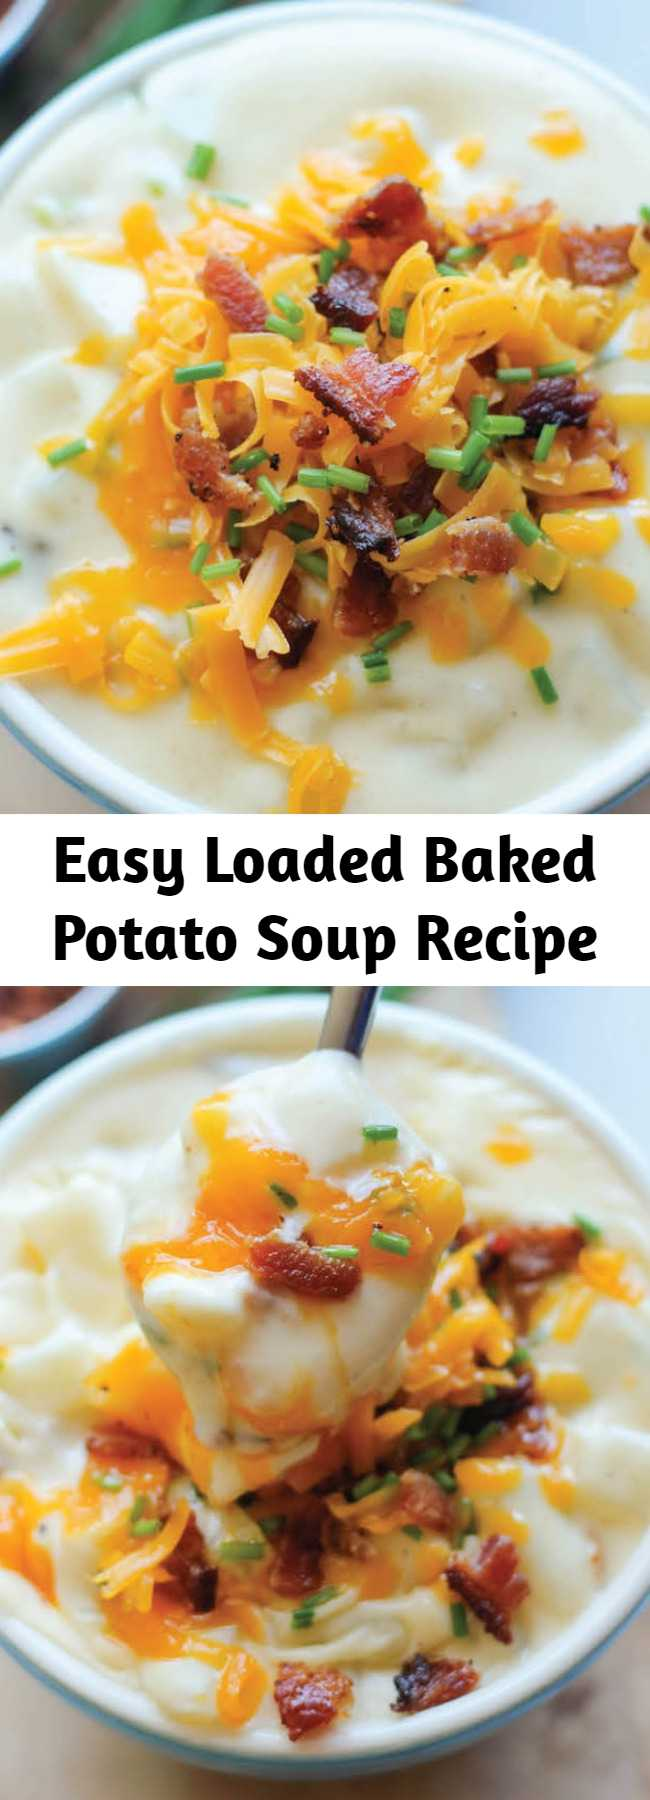 Easy Loaded Baked Potato Soup Recipe - All the flavors of a loaded baked potato comes together beautifully in this satisfyingly creamy and comforting soup!